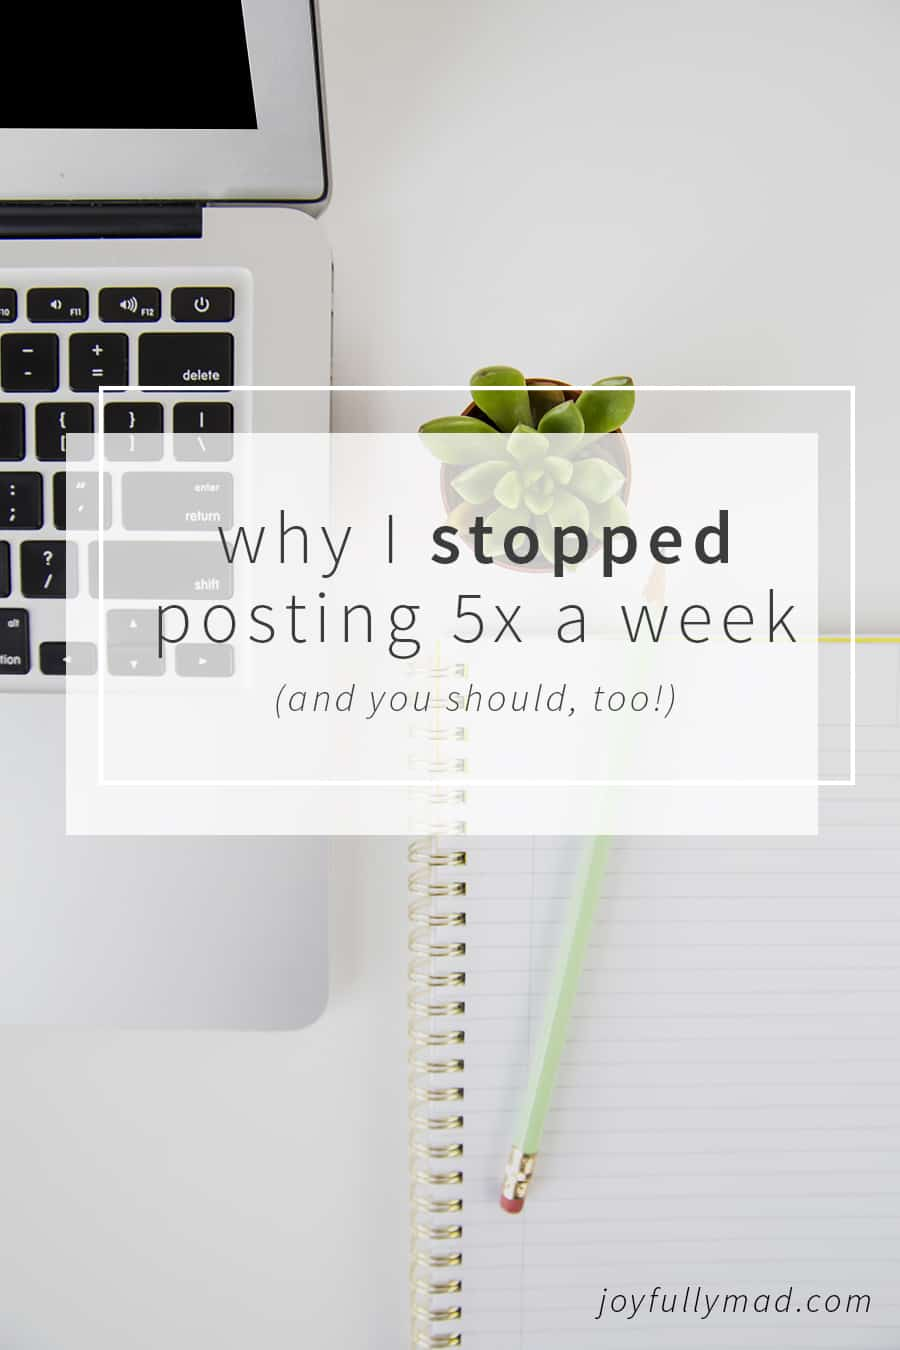 Bloggers, are you posting on your blogs too often? Find out why I stopped posting as frequently and it actually grew my blog!